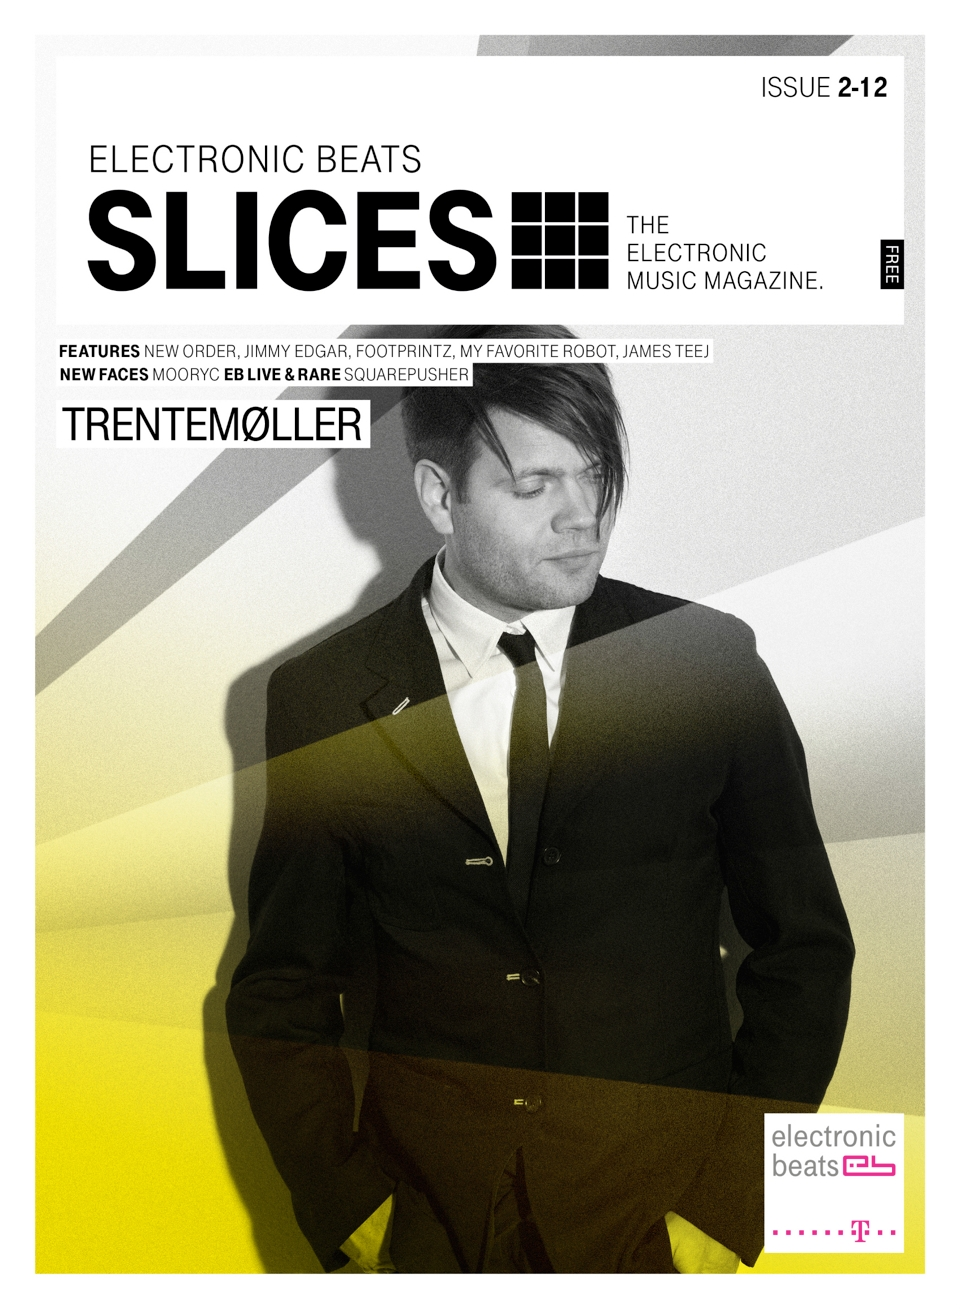 Slices-Cover-2-2012-Electronic-Beats